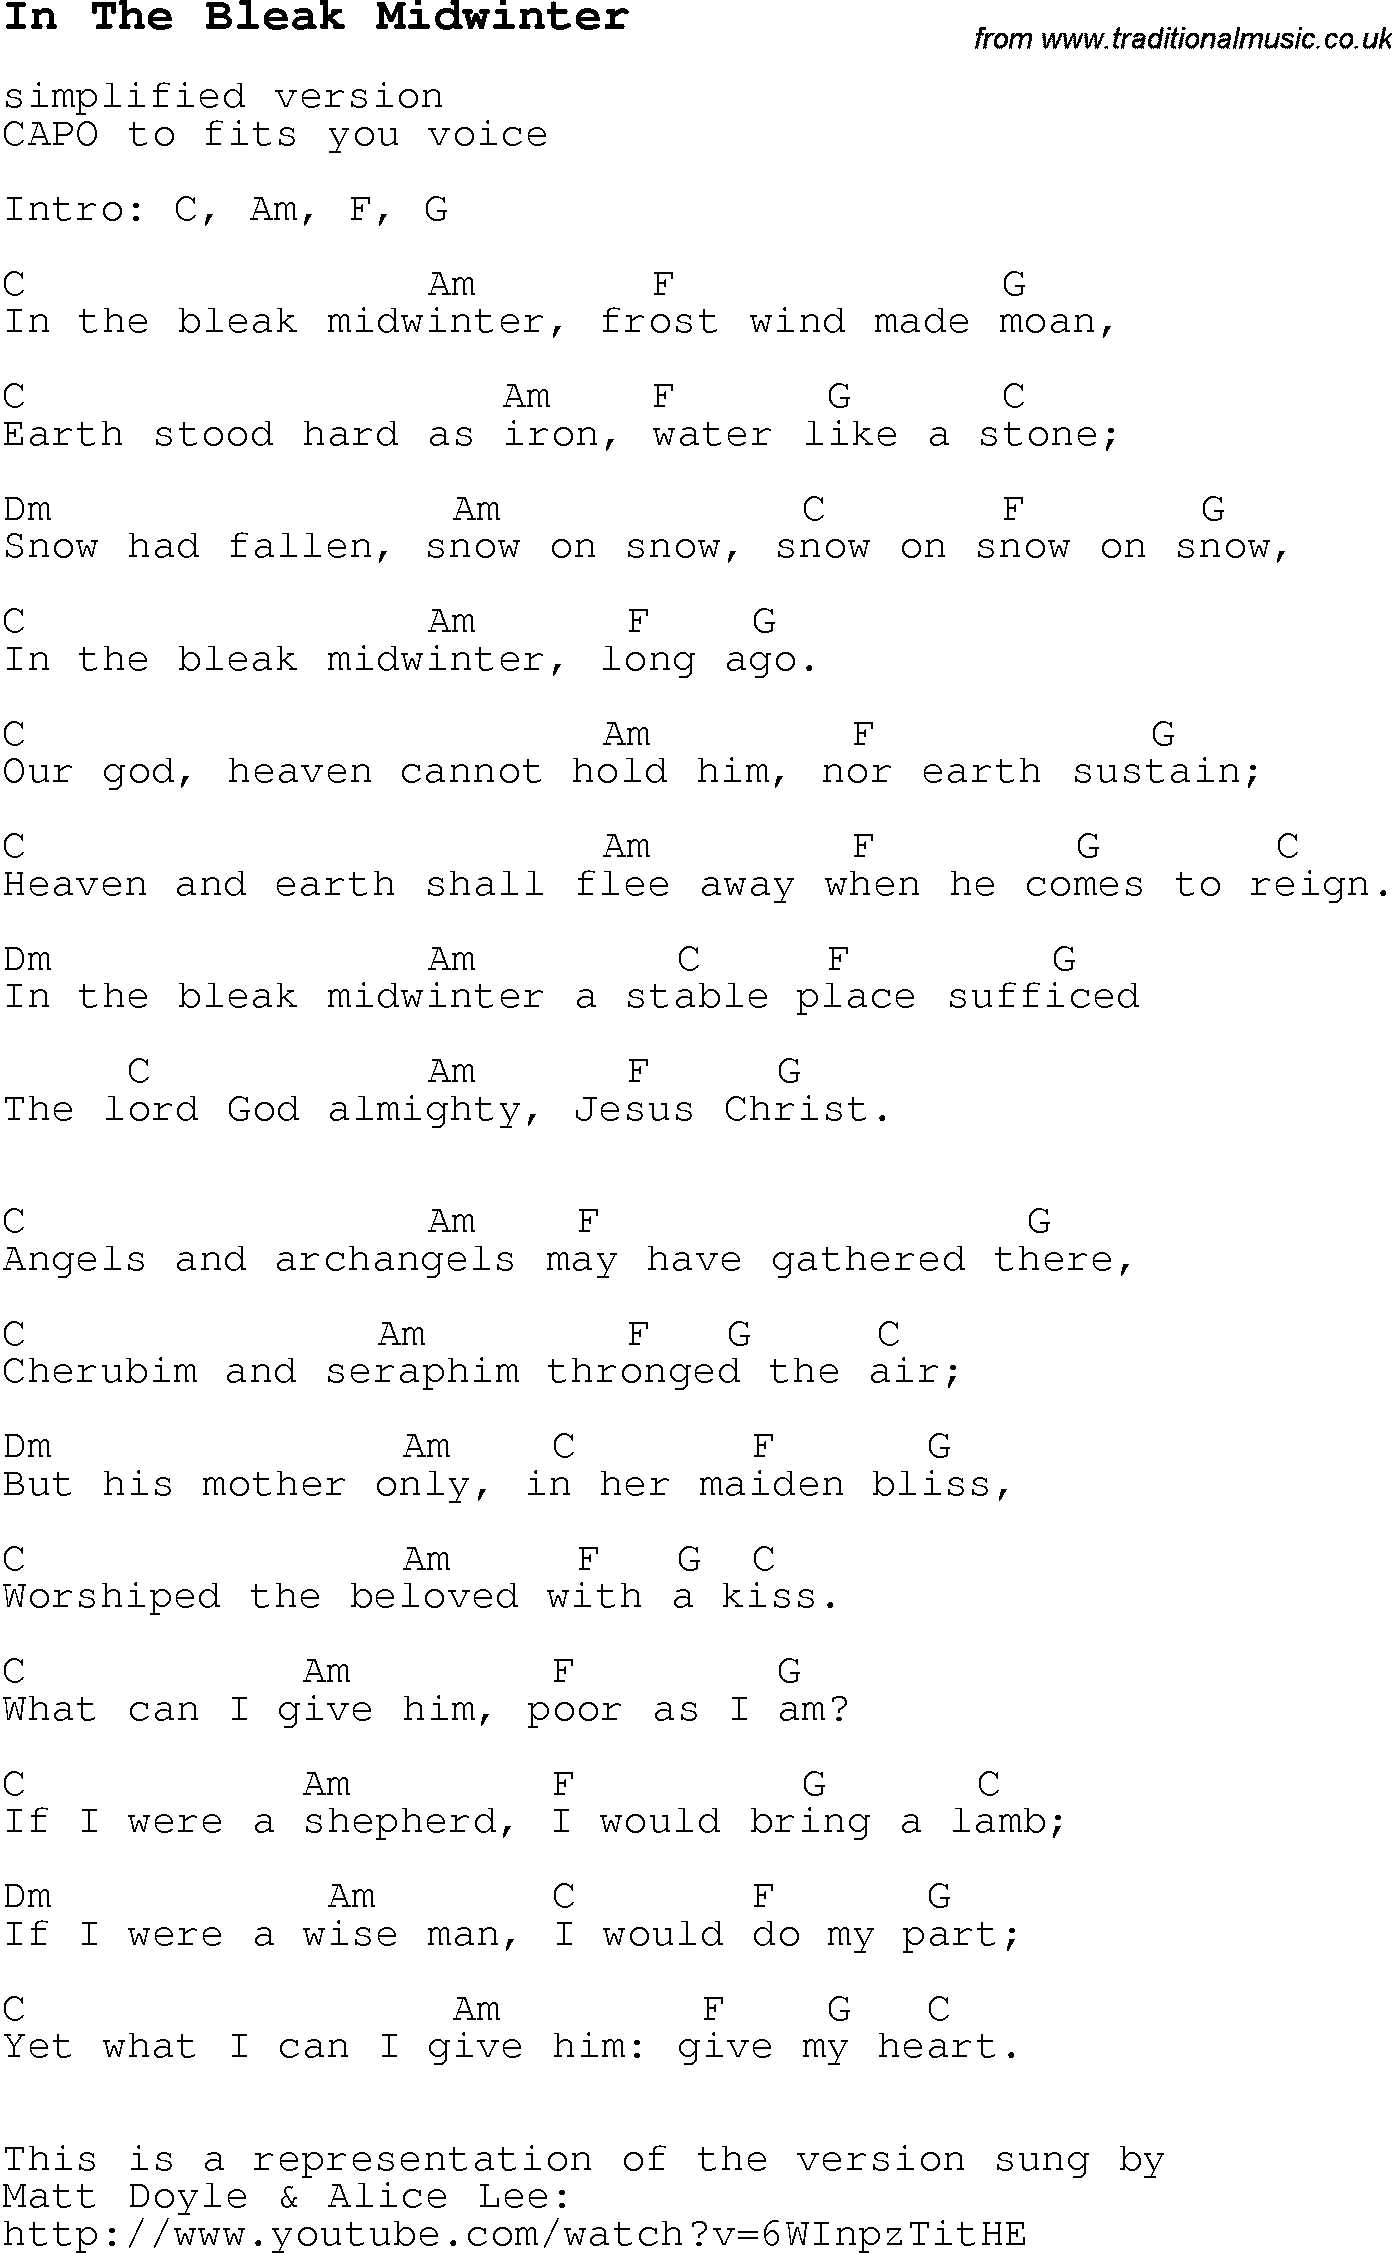 Christmas Carol/Song lyrics with chords for In The Bleak Midwinter